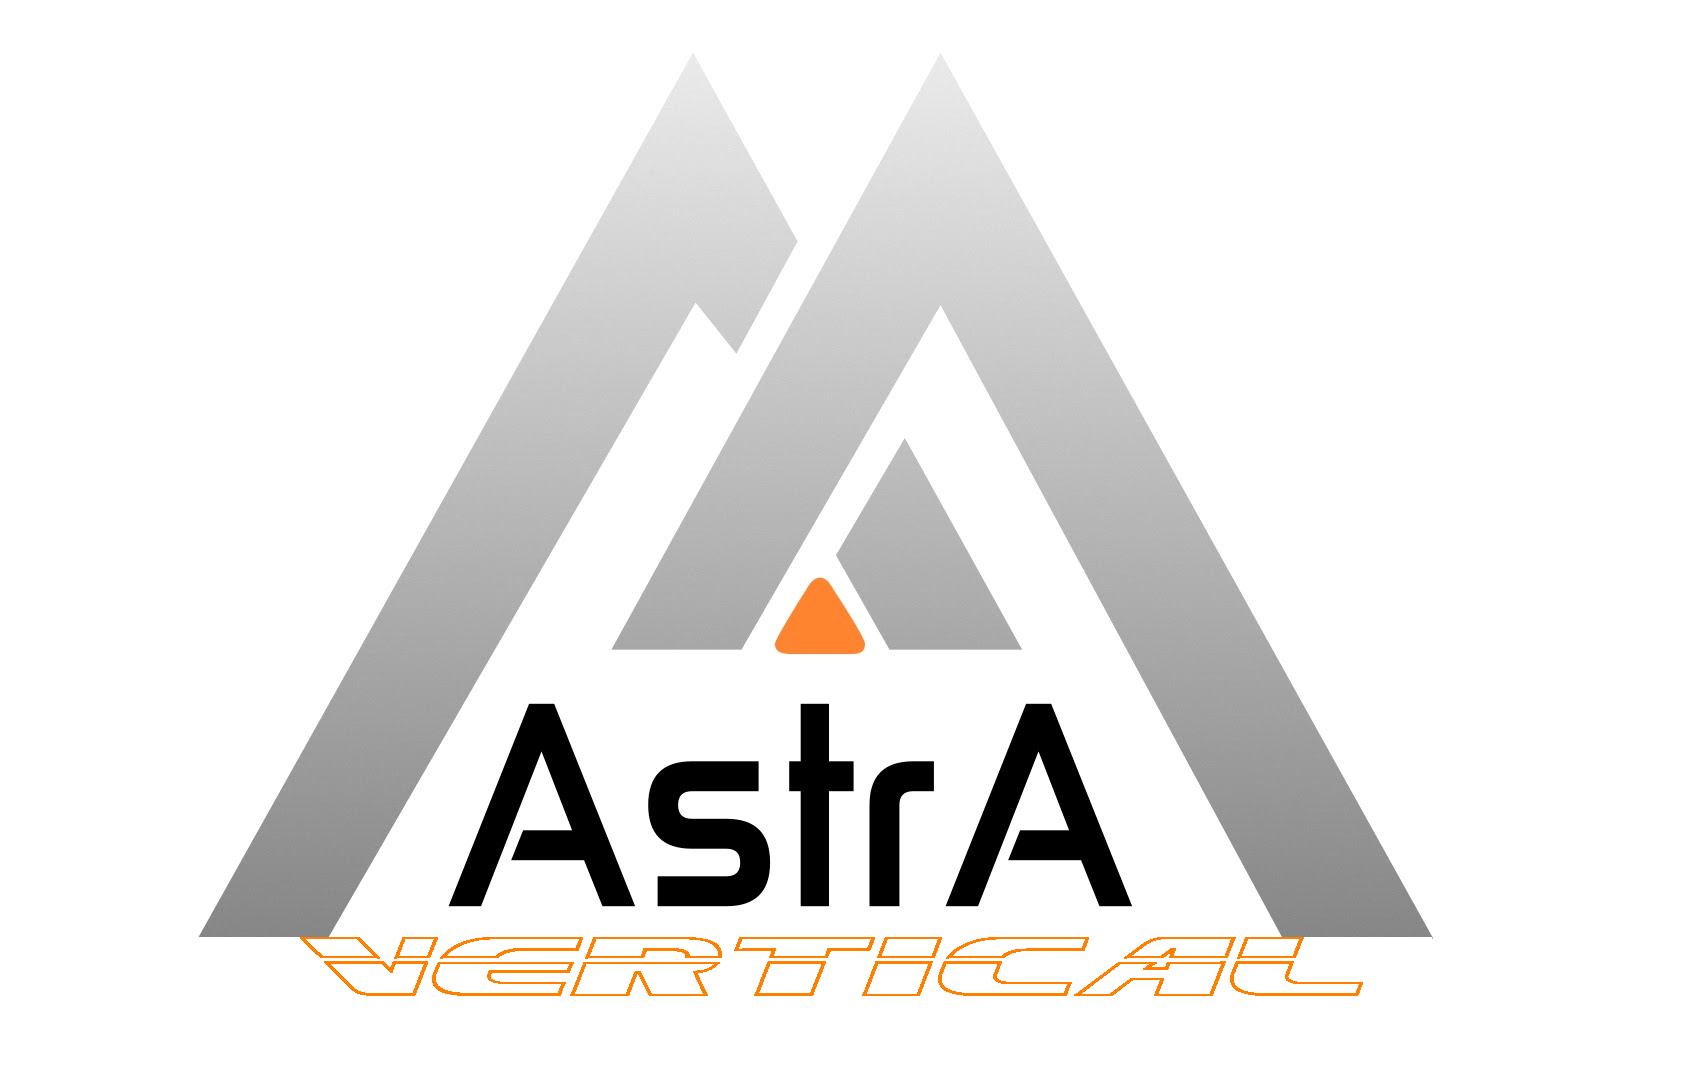 Astra Vertical